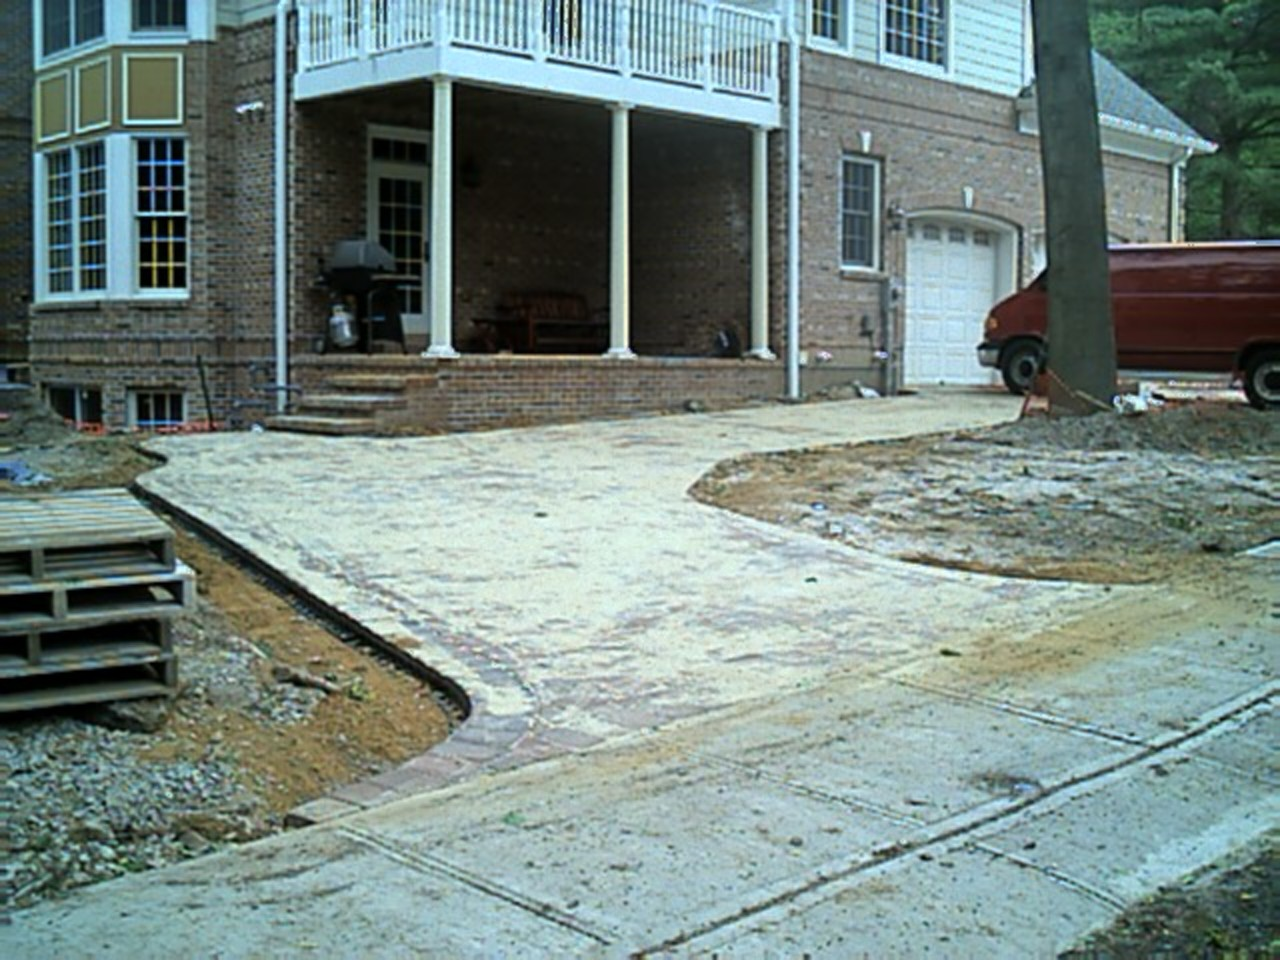 This is a view from the other entrance, the sand is being swept into the pavers.